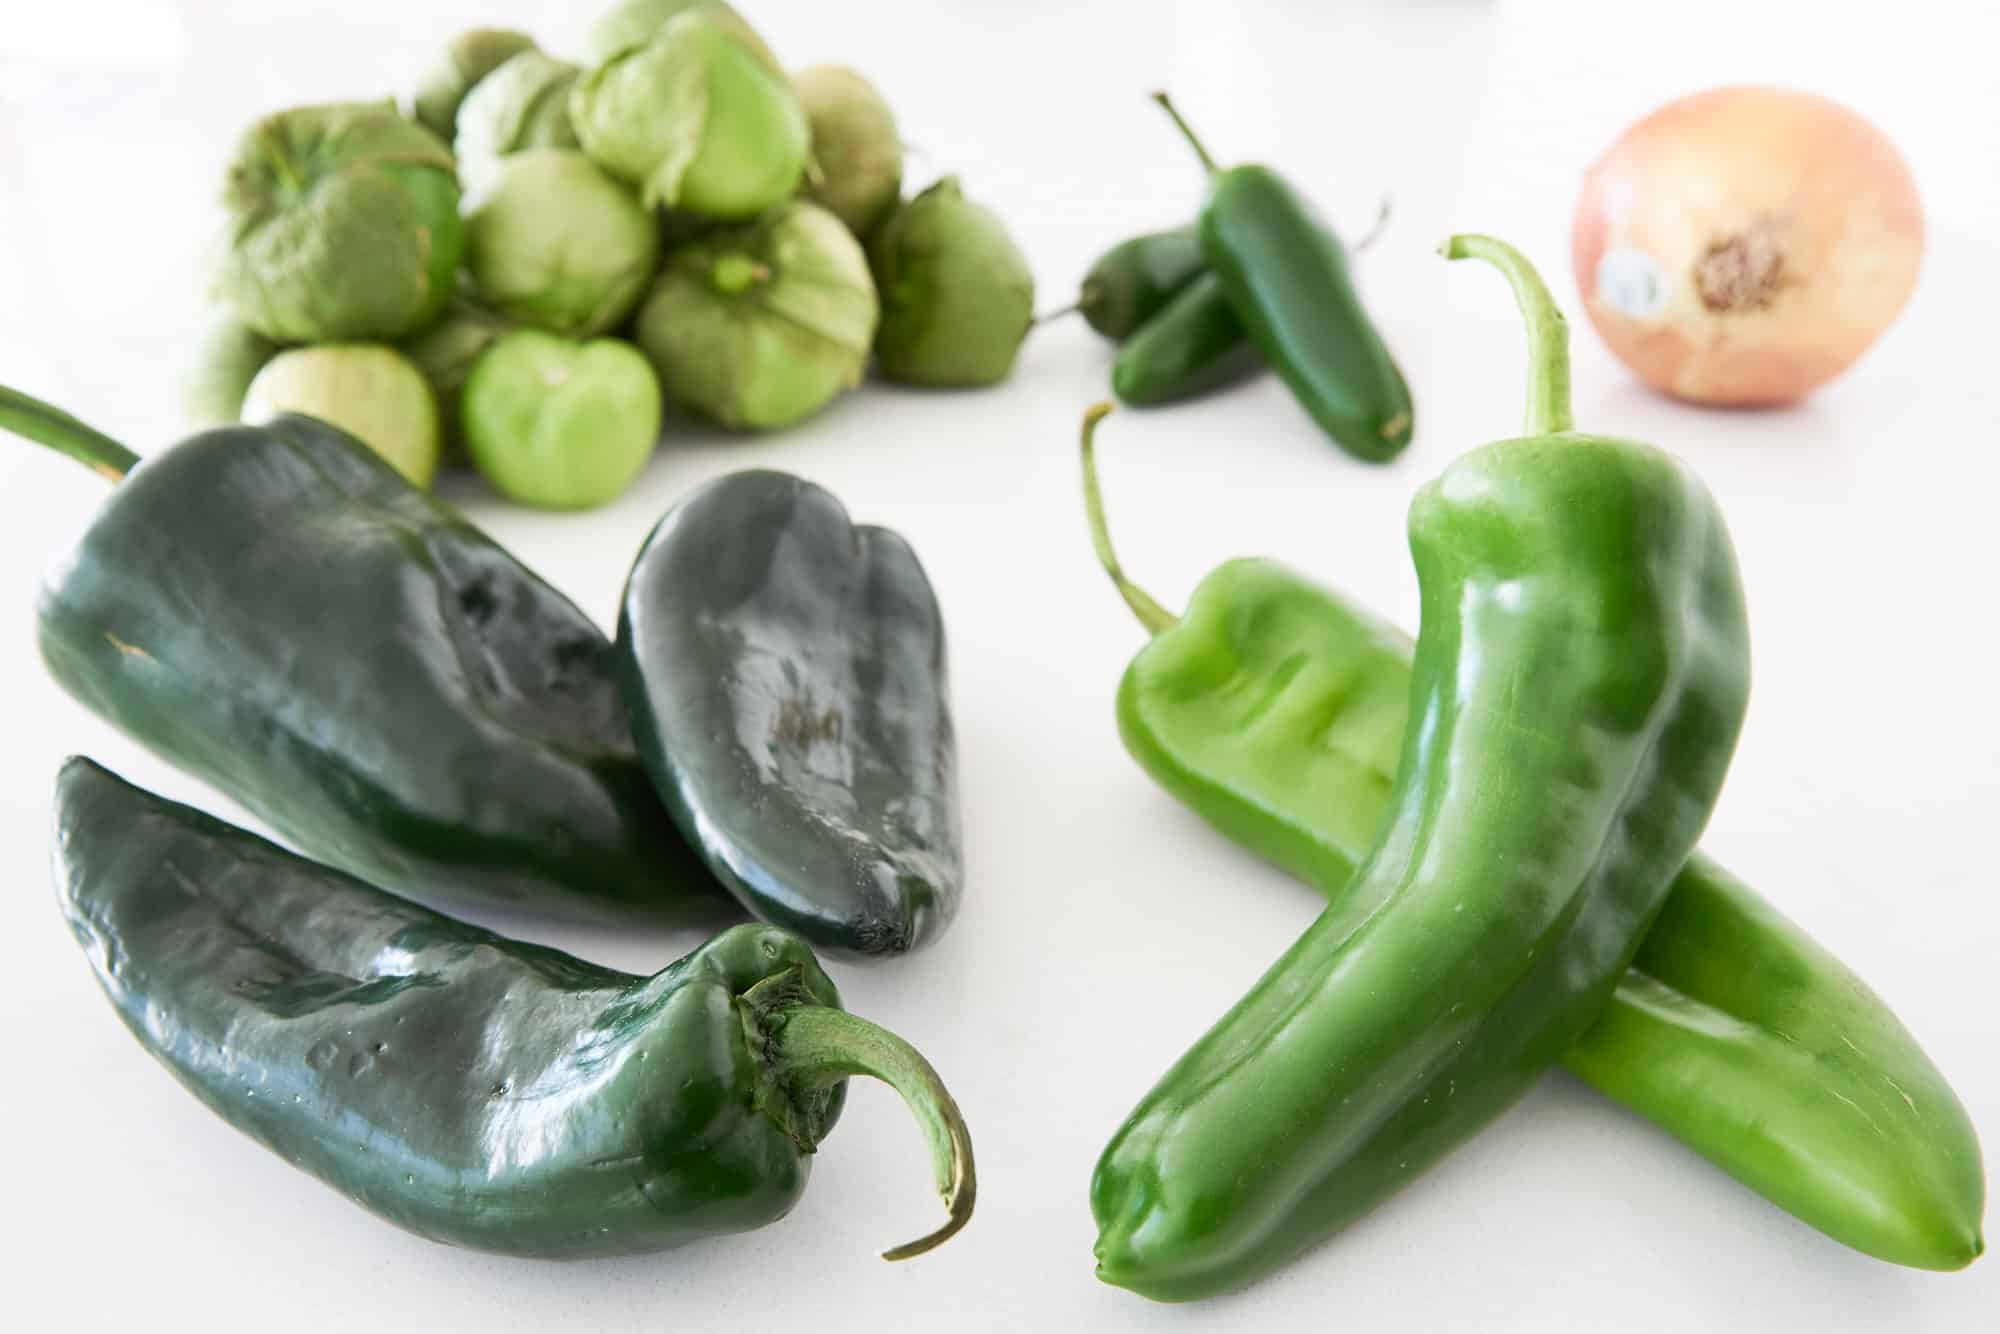 Green chilies and tomatillos for Chile Verde.